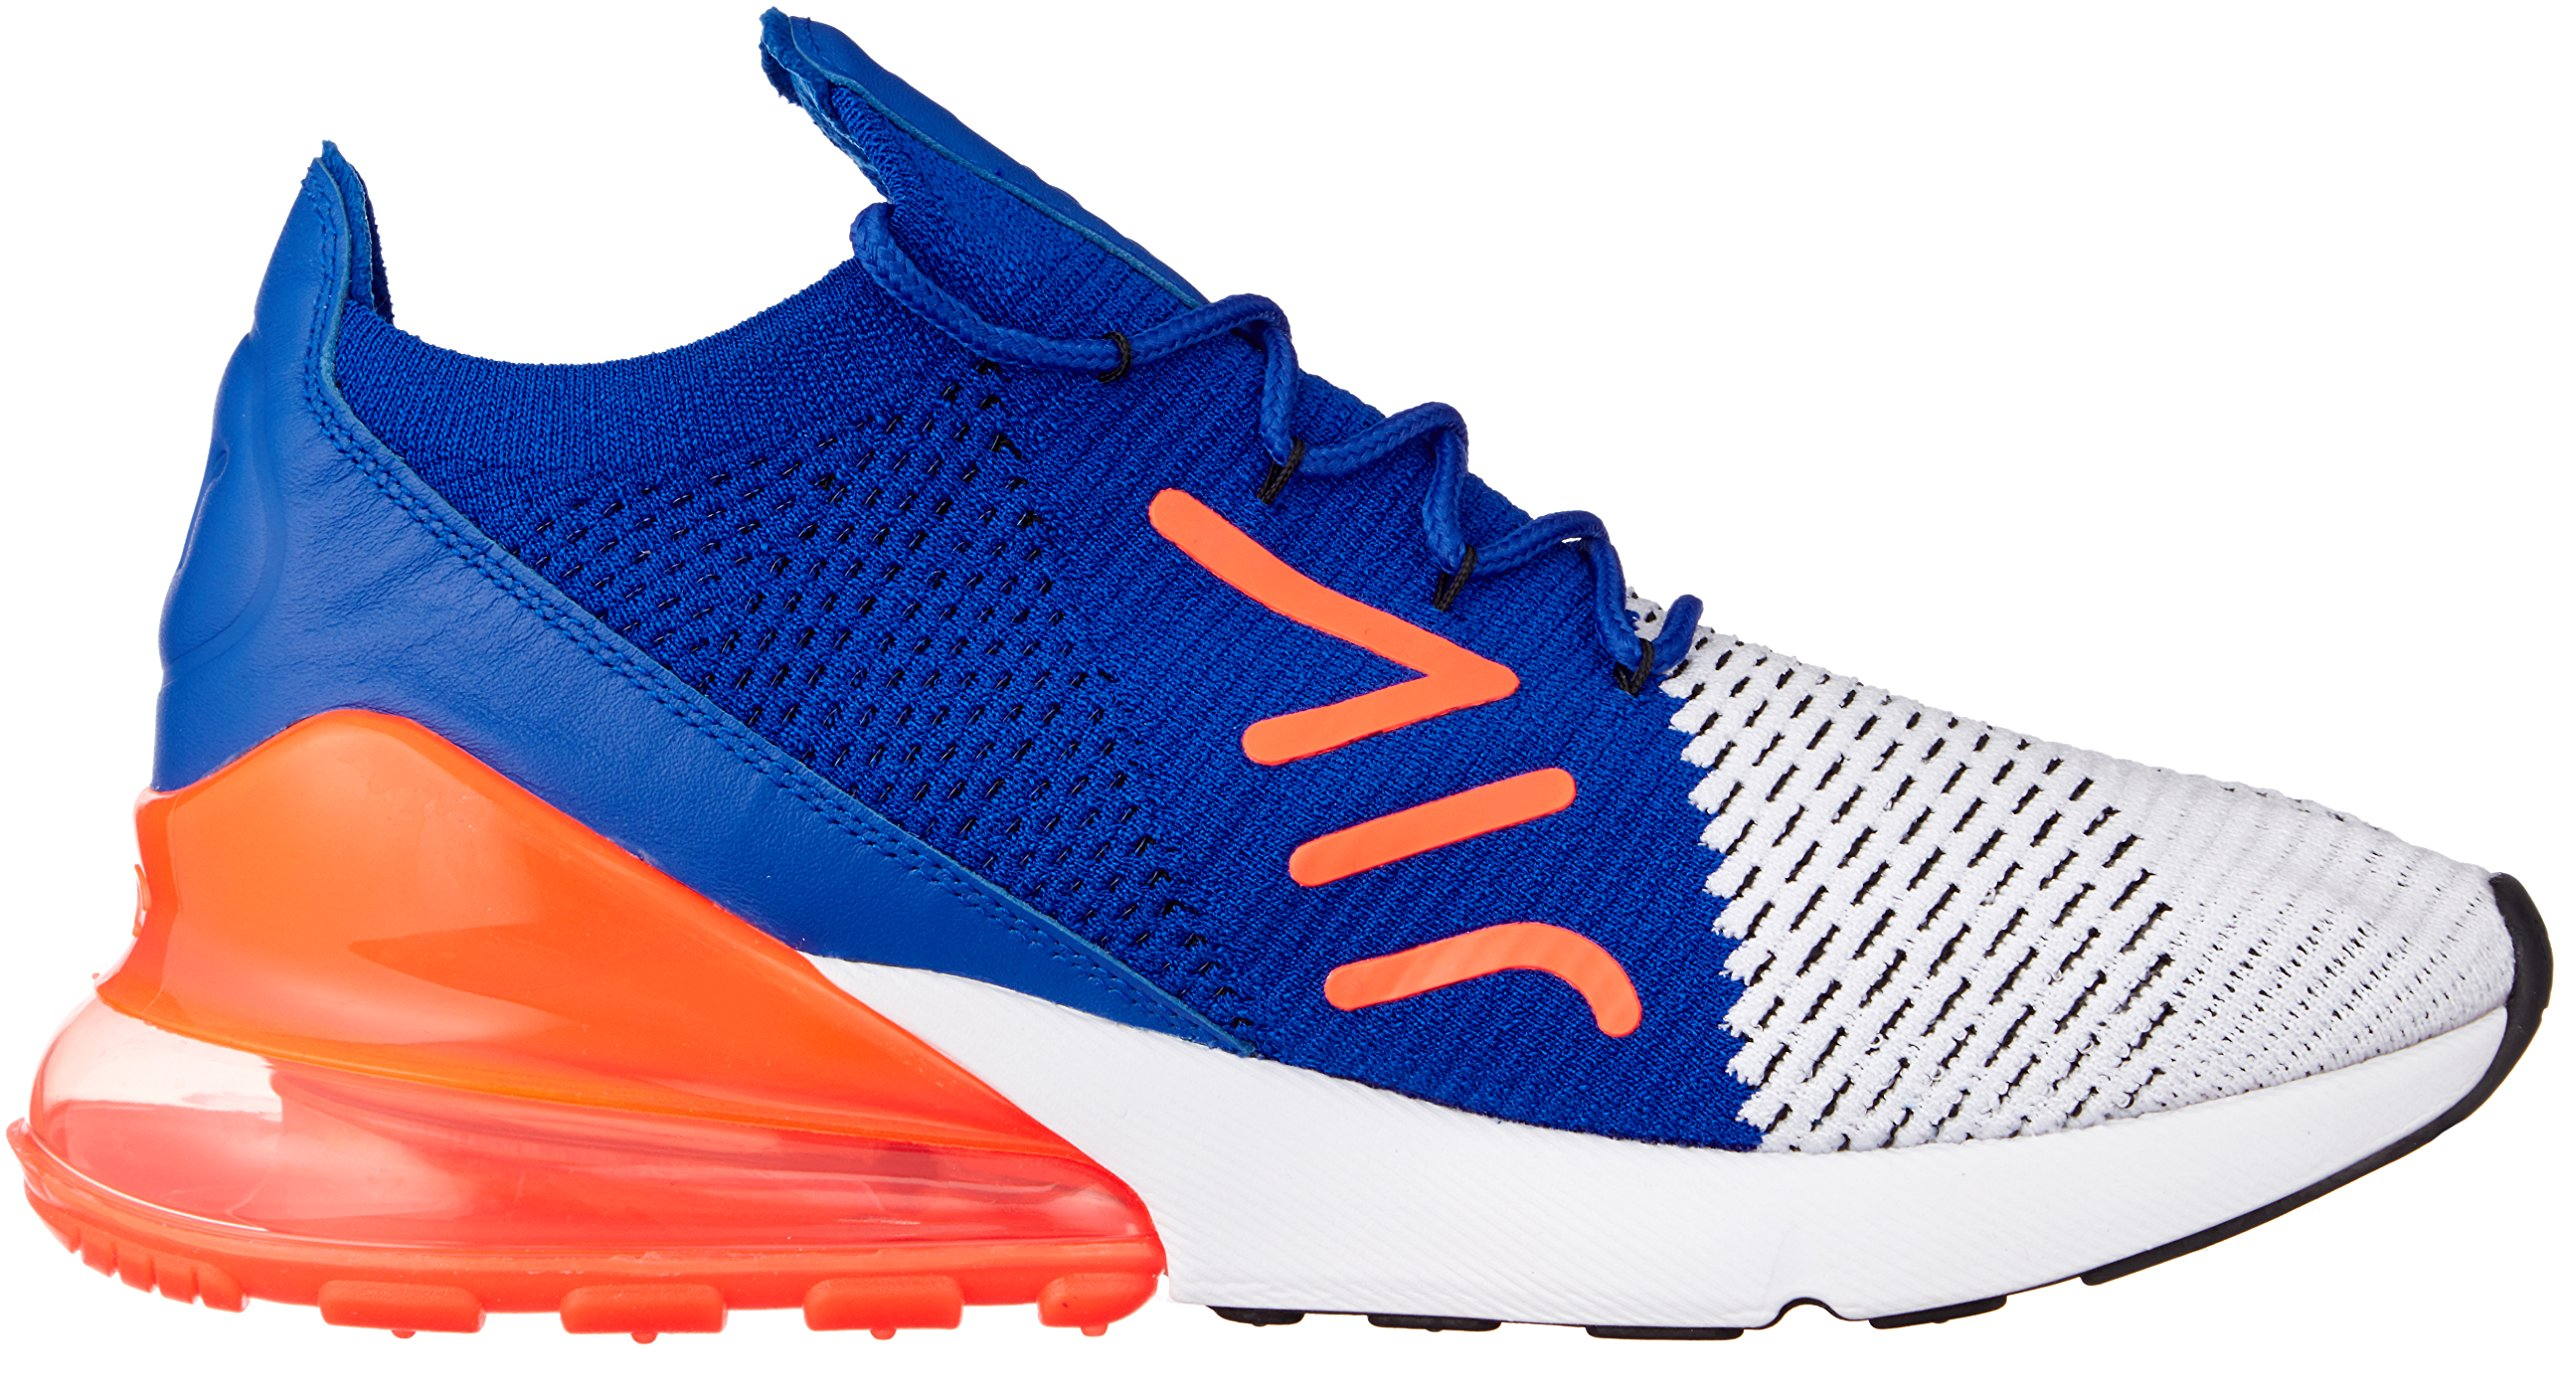 Nike Men's Air Max 270 Flyknit, White/Black-Racer Blue, 10.5 M US by Nike (Image #6)